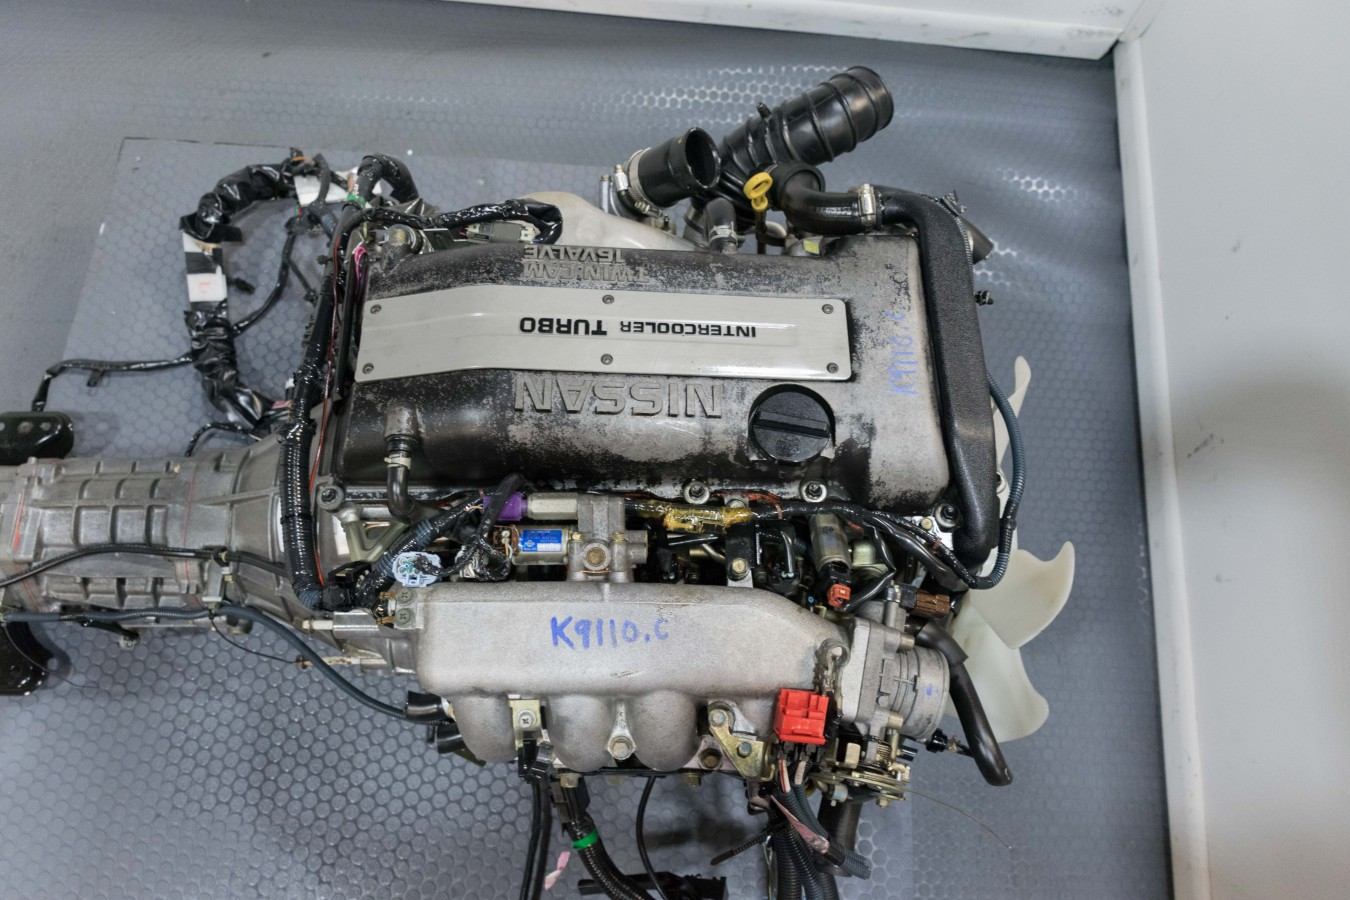 Used JDM Nissan SR20det S15 Turbo Engine, 6mt RWD Trans, Harness, MAFS, Ecu  for sale